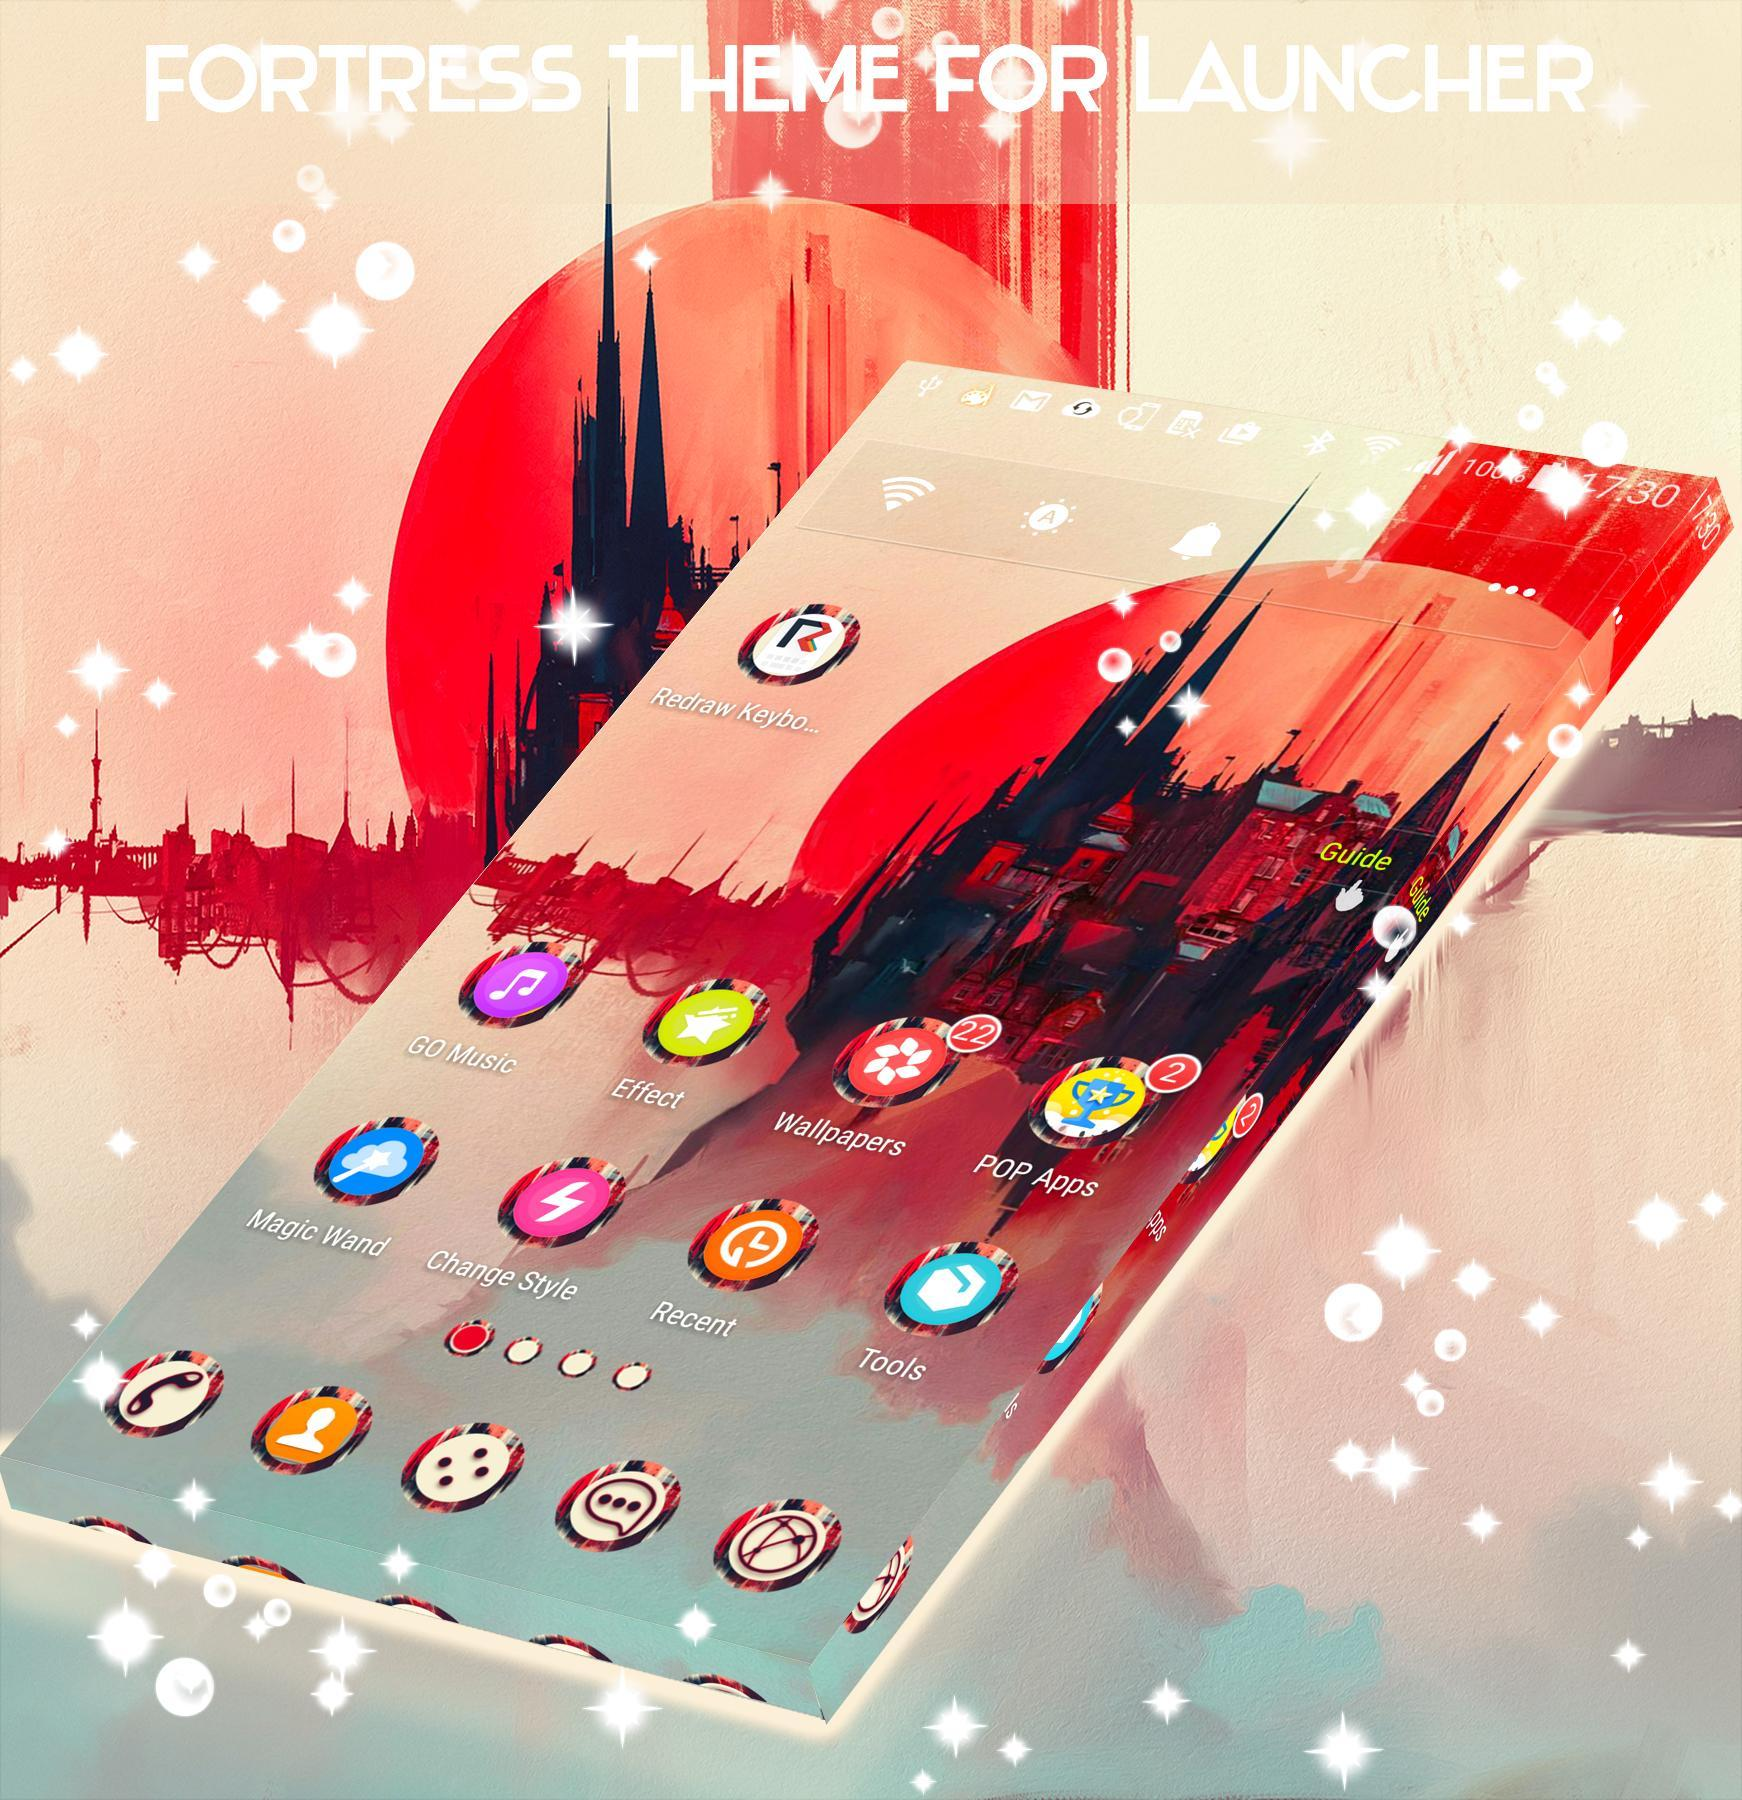 Fortress Theme for Launcher screenshot 3